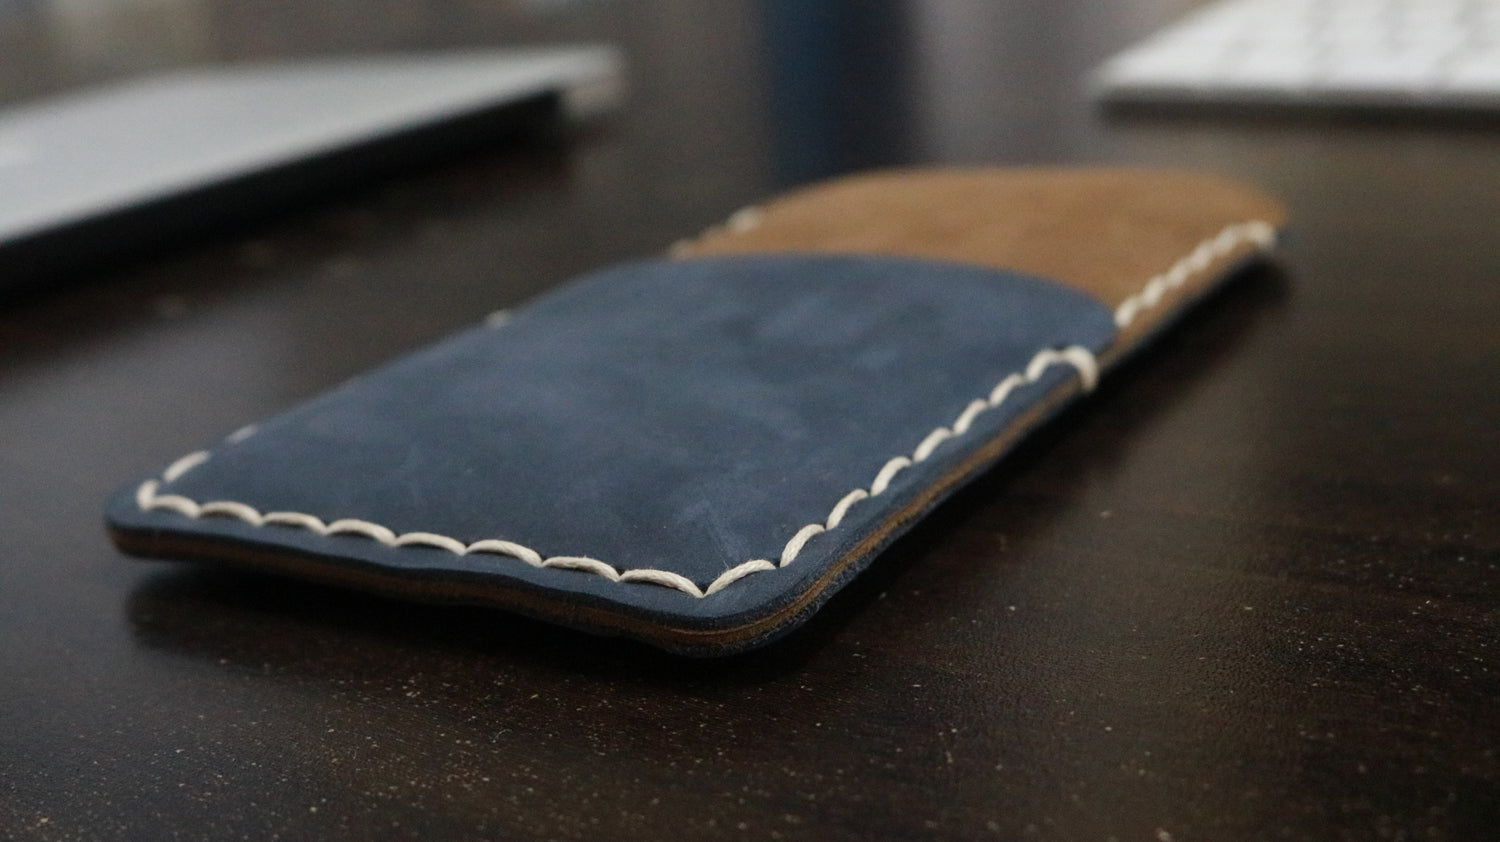 STRATOZY - Handmade Genuine Leather Mobile Cover